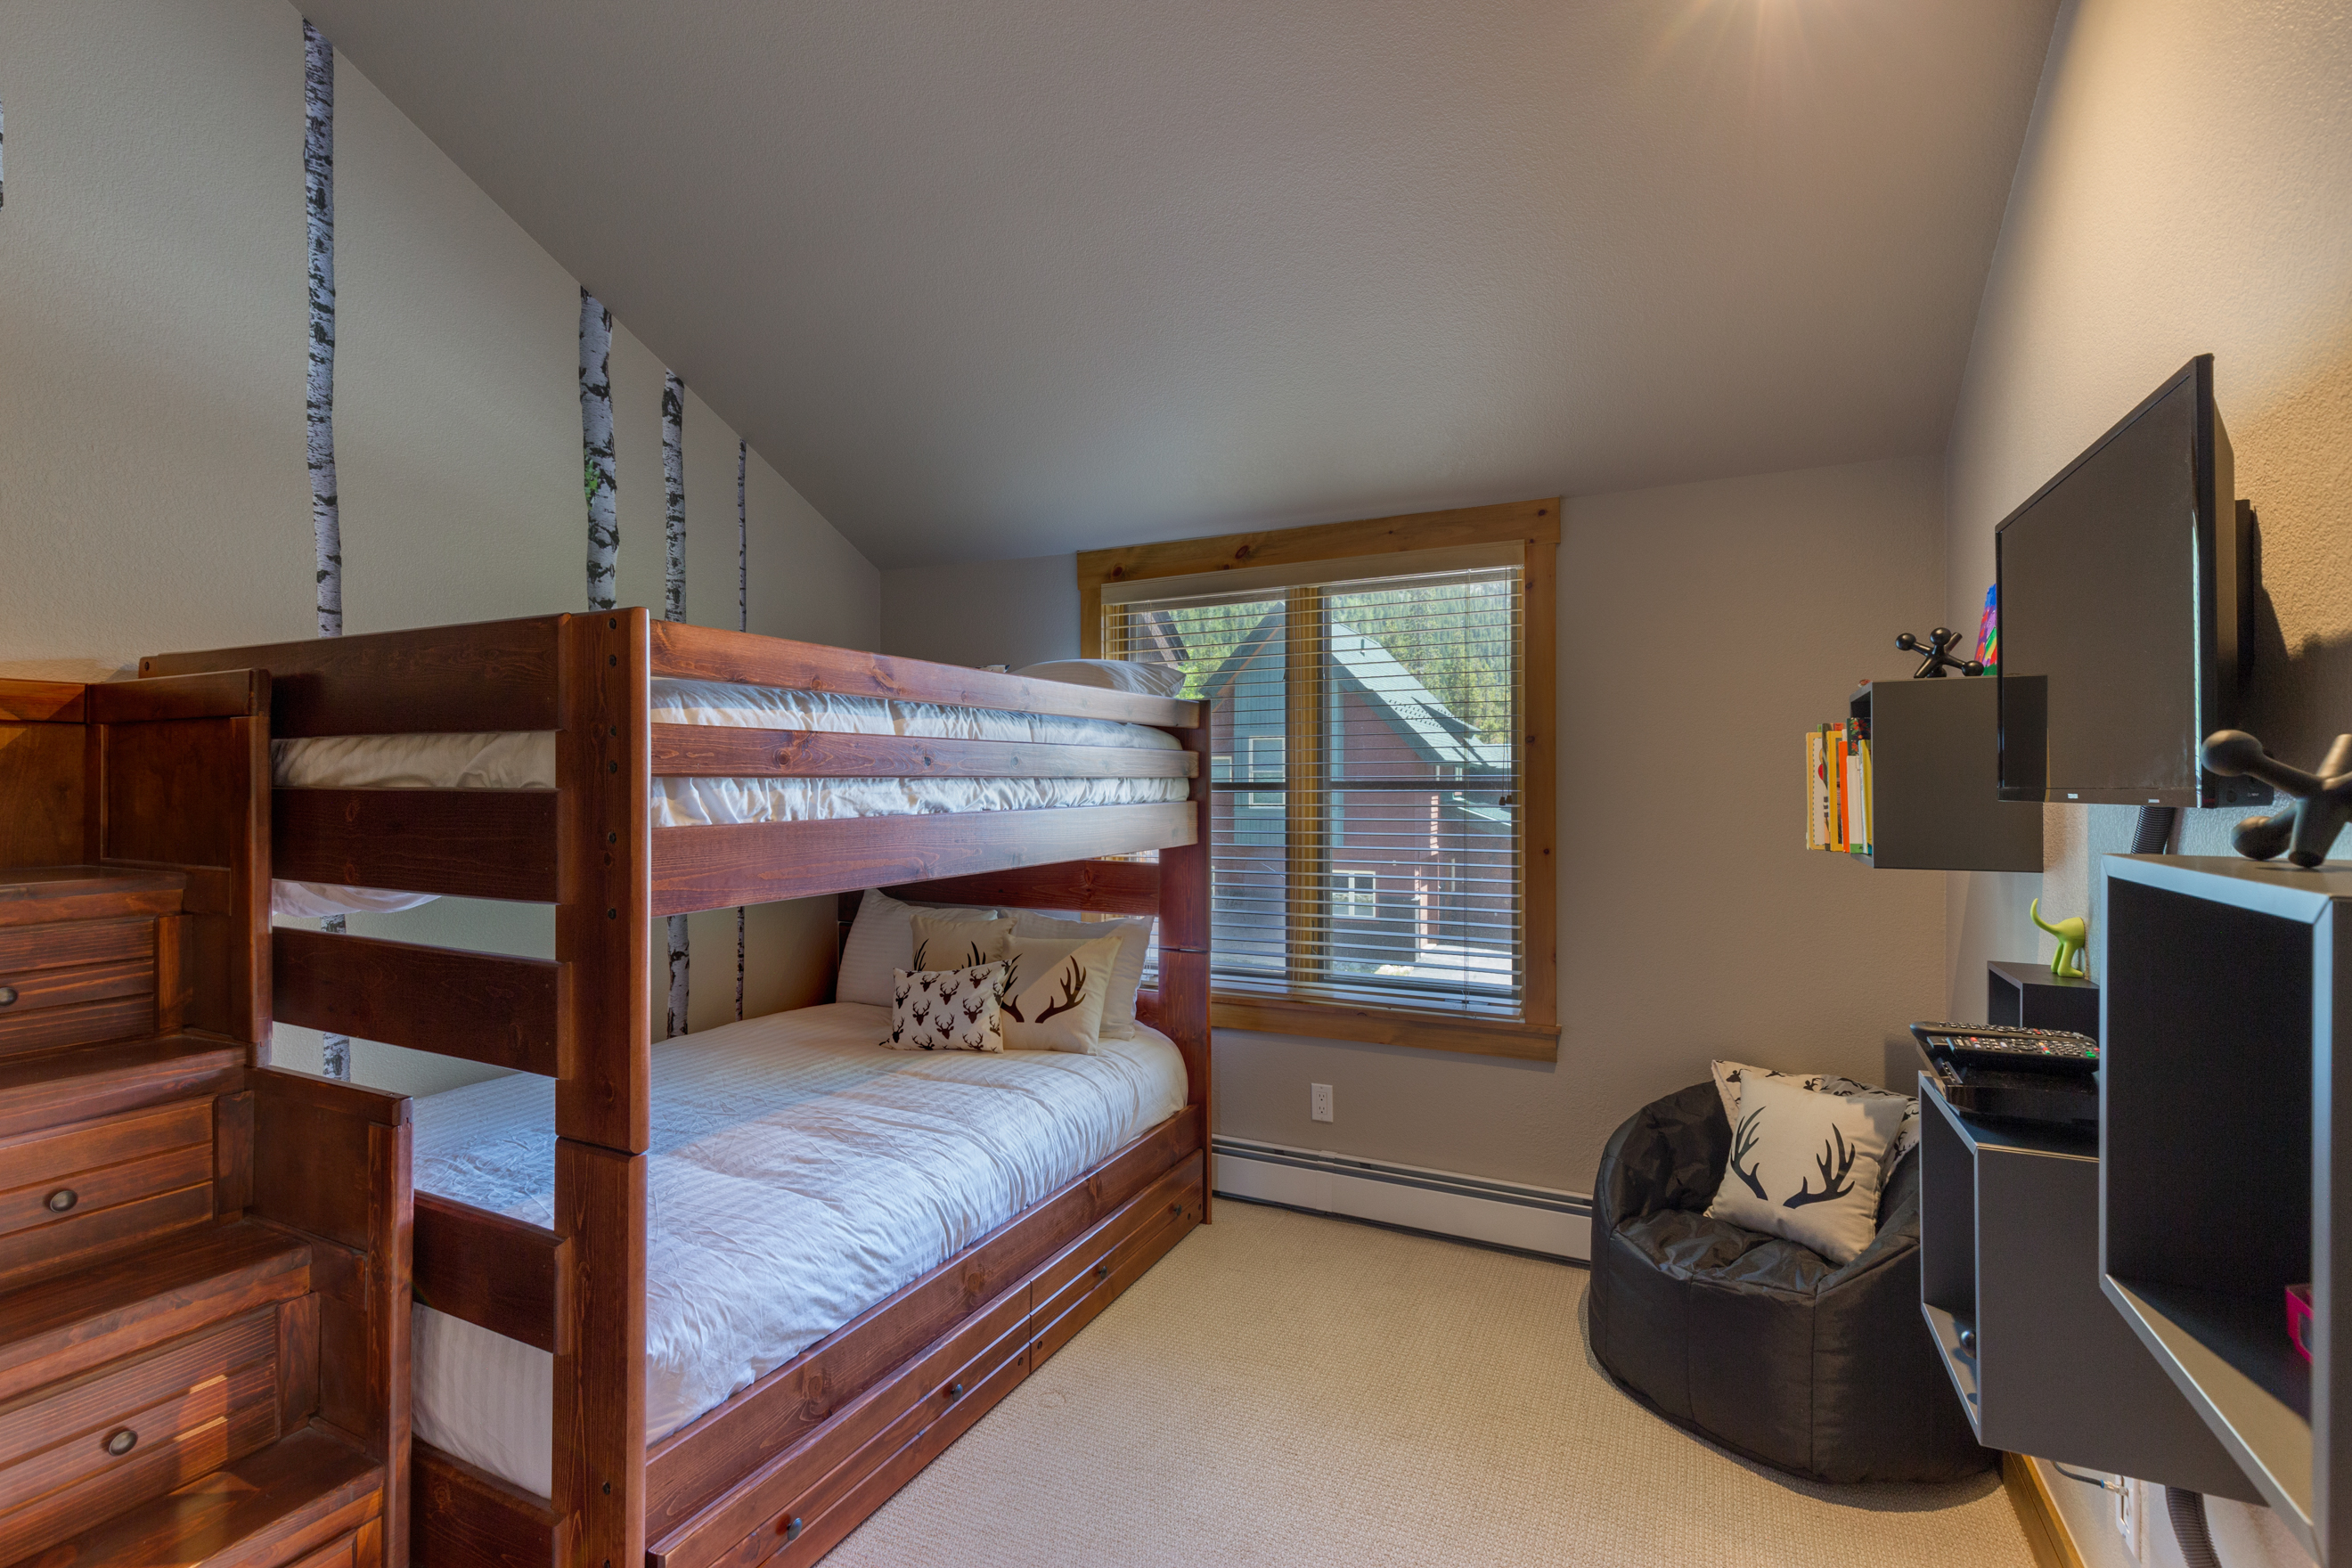 The first guest bedroom features a full-sized bunk bed with Ivory Bedding and a twin trundle that pulls out. There is a mounted flat screen TV and a Blu-ray player.